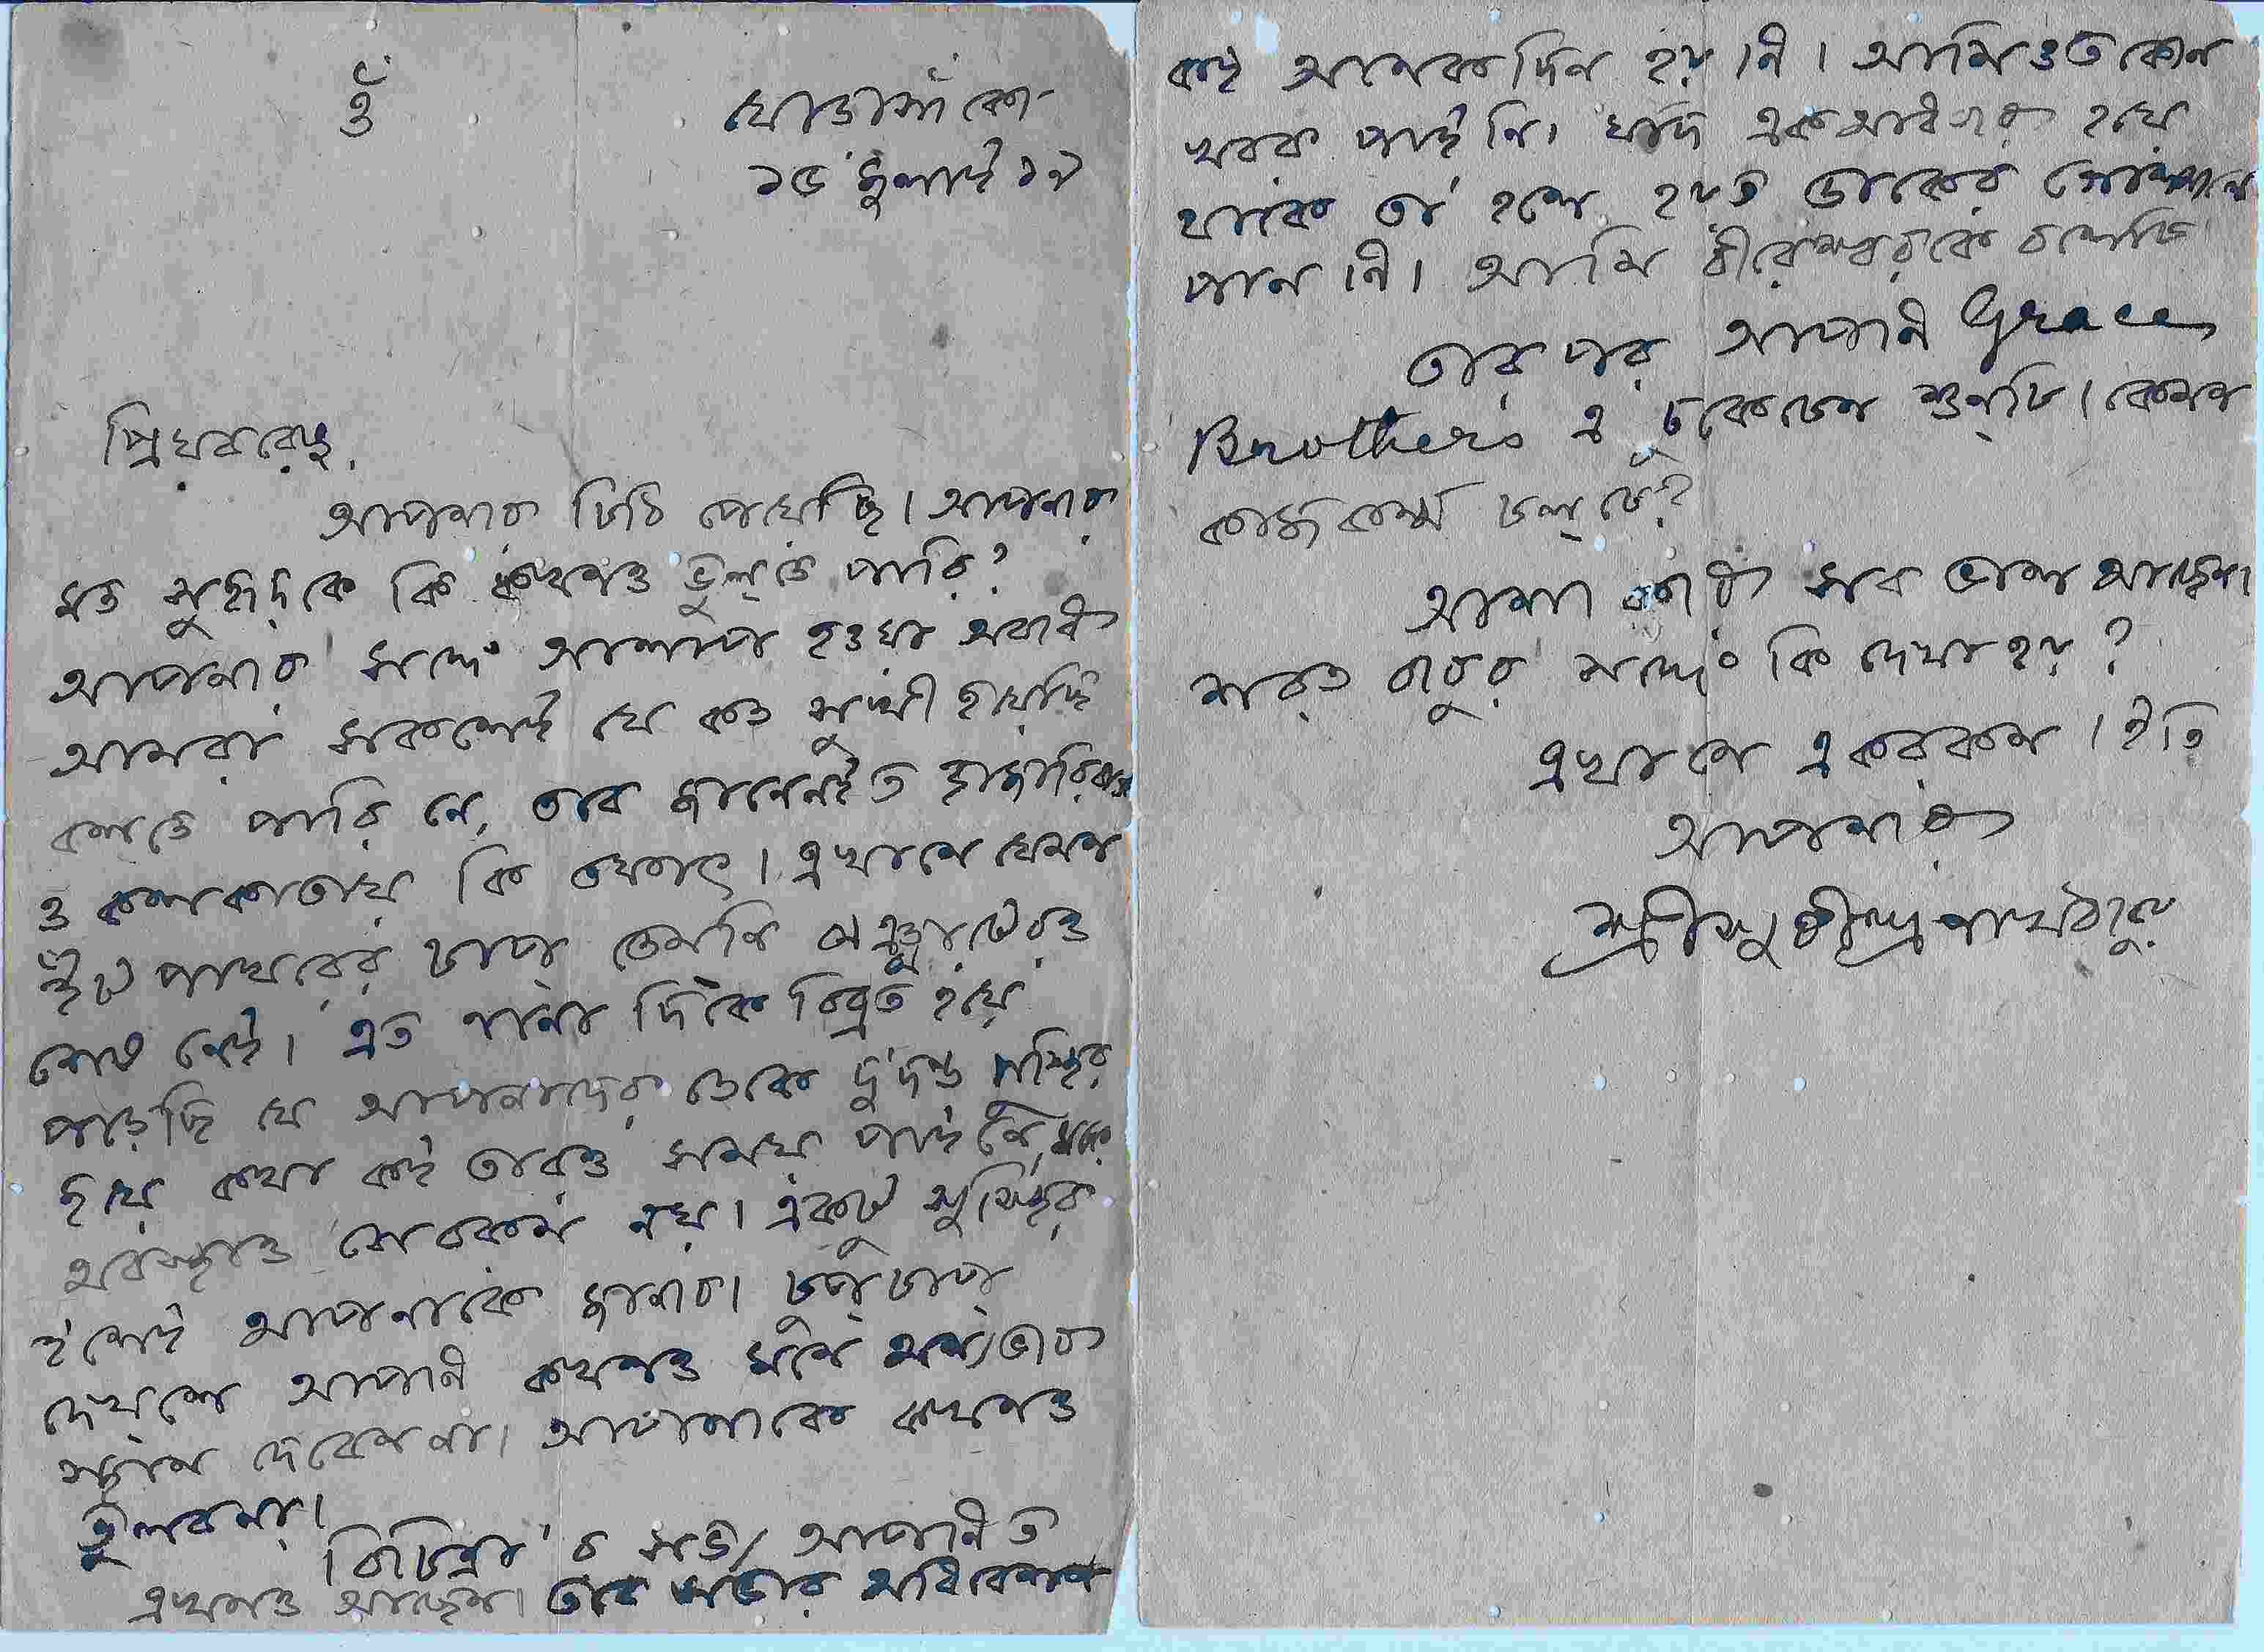 Sarat writes to manindranath 1931 sarat visits surendranath 1927 the 1931 note translation stopboris Gallery